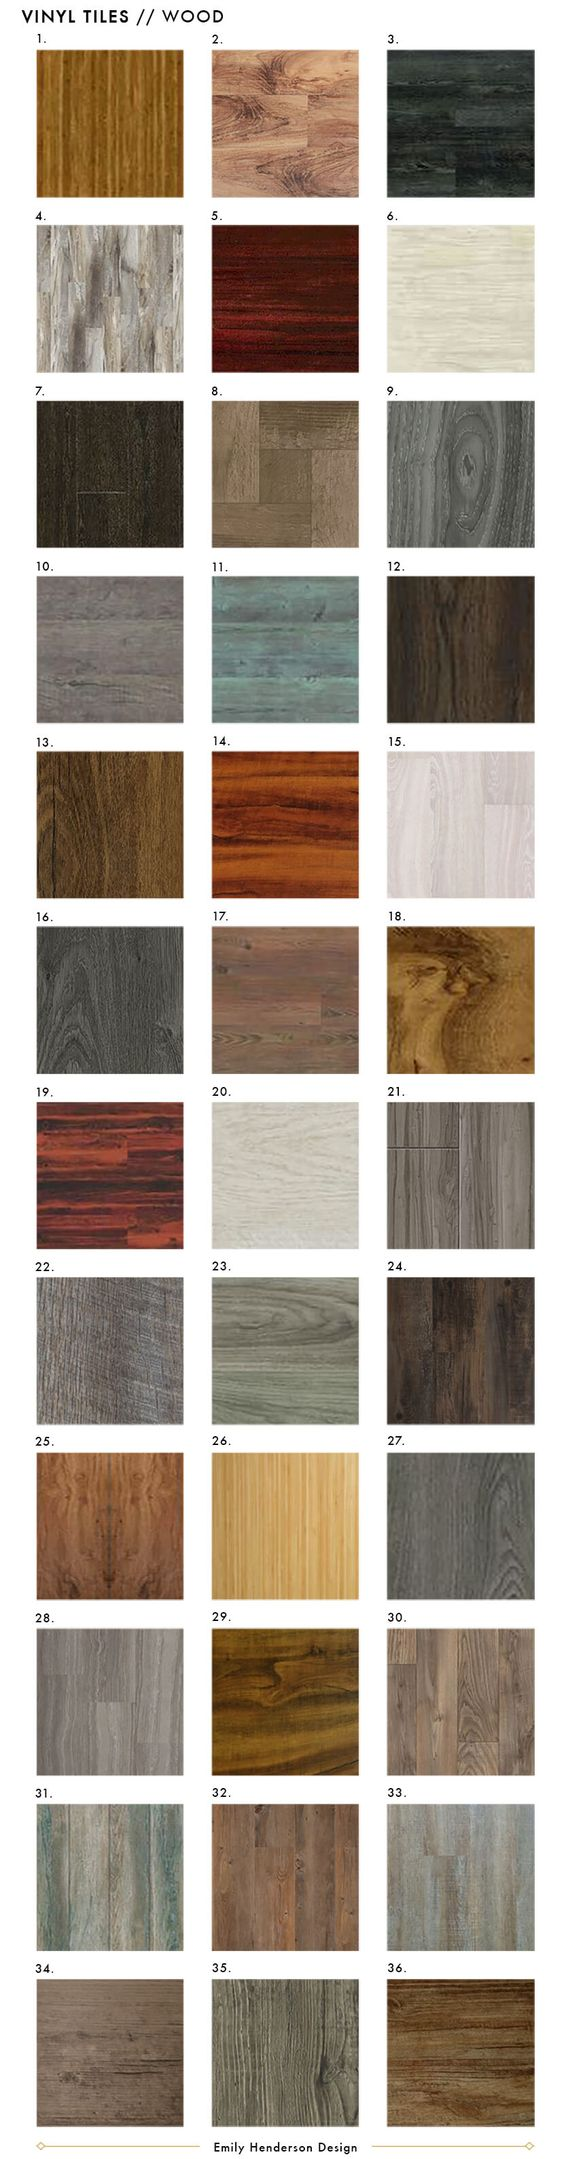 Vinyl tiles vinyls and tile on pinterest for Faux wood flooring